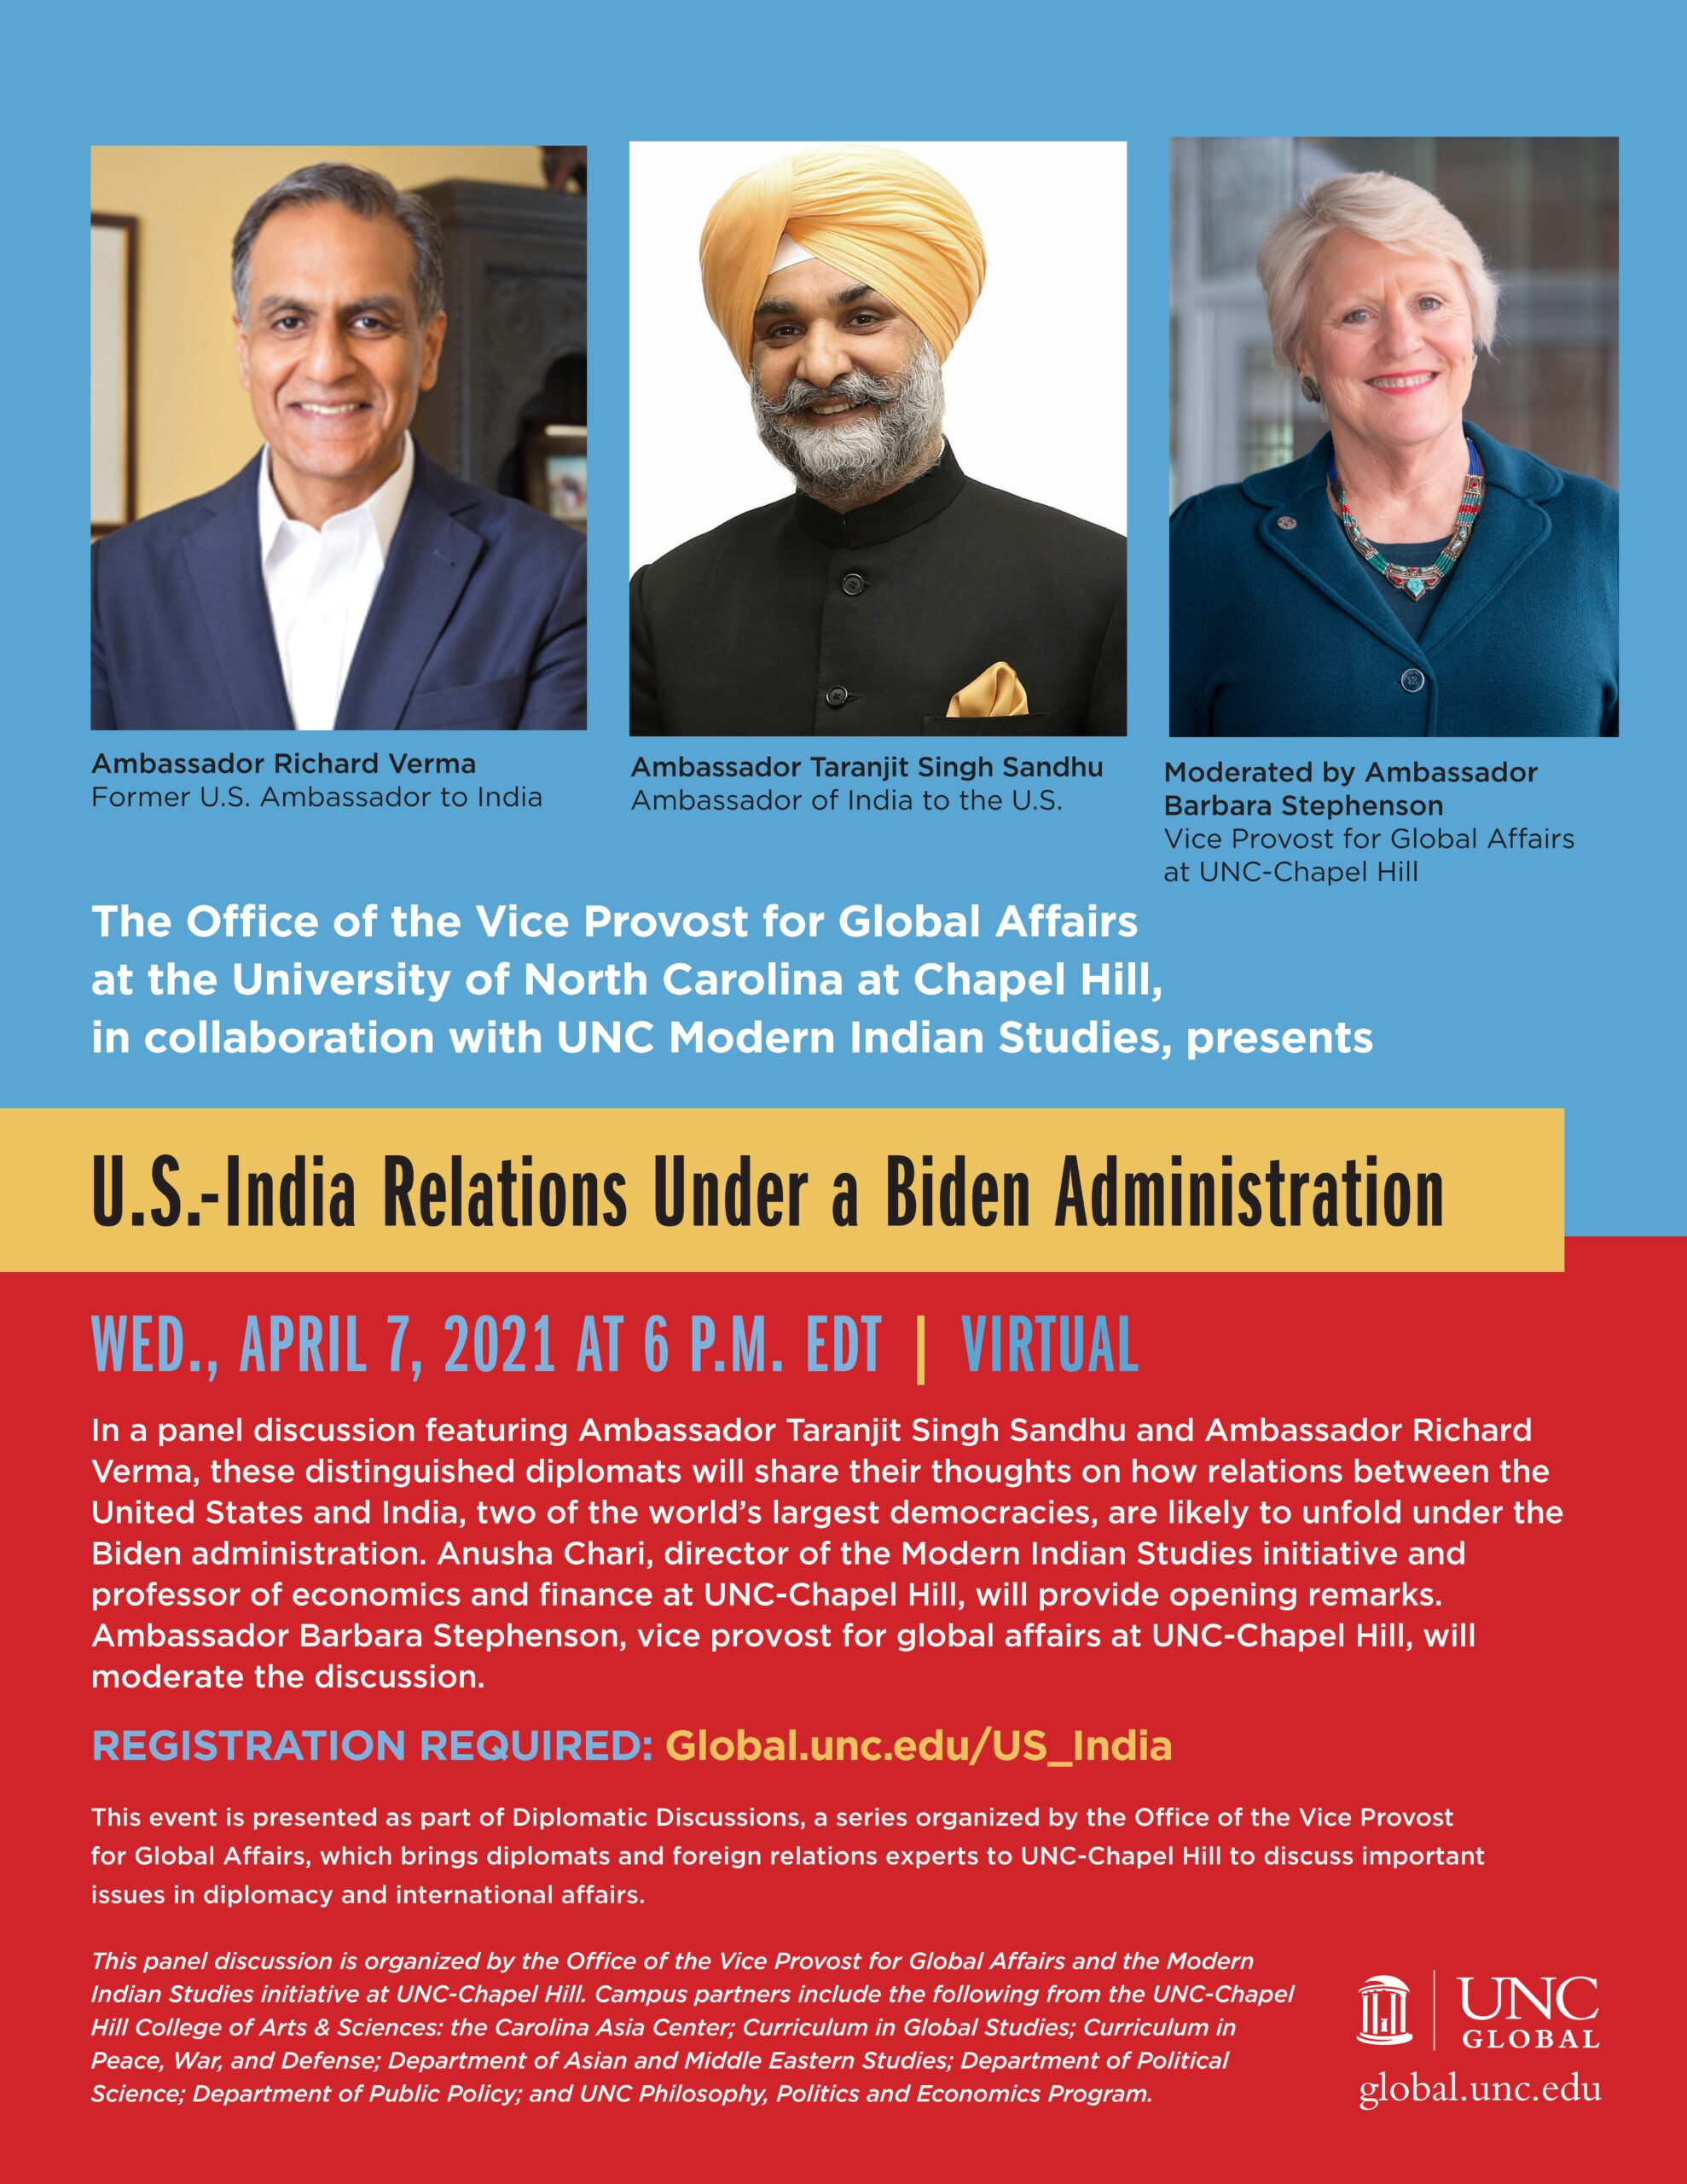 Pictures of Ambs. Richard Verma, Taranjit Singh Sandhu, and Barbara J. Stephenson atop a flyer for the event